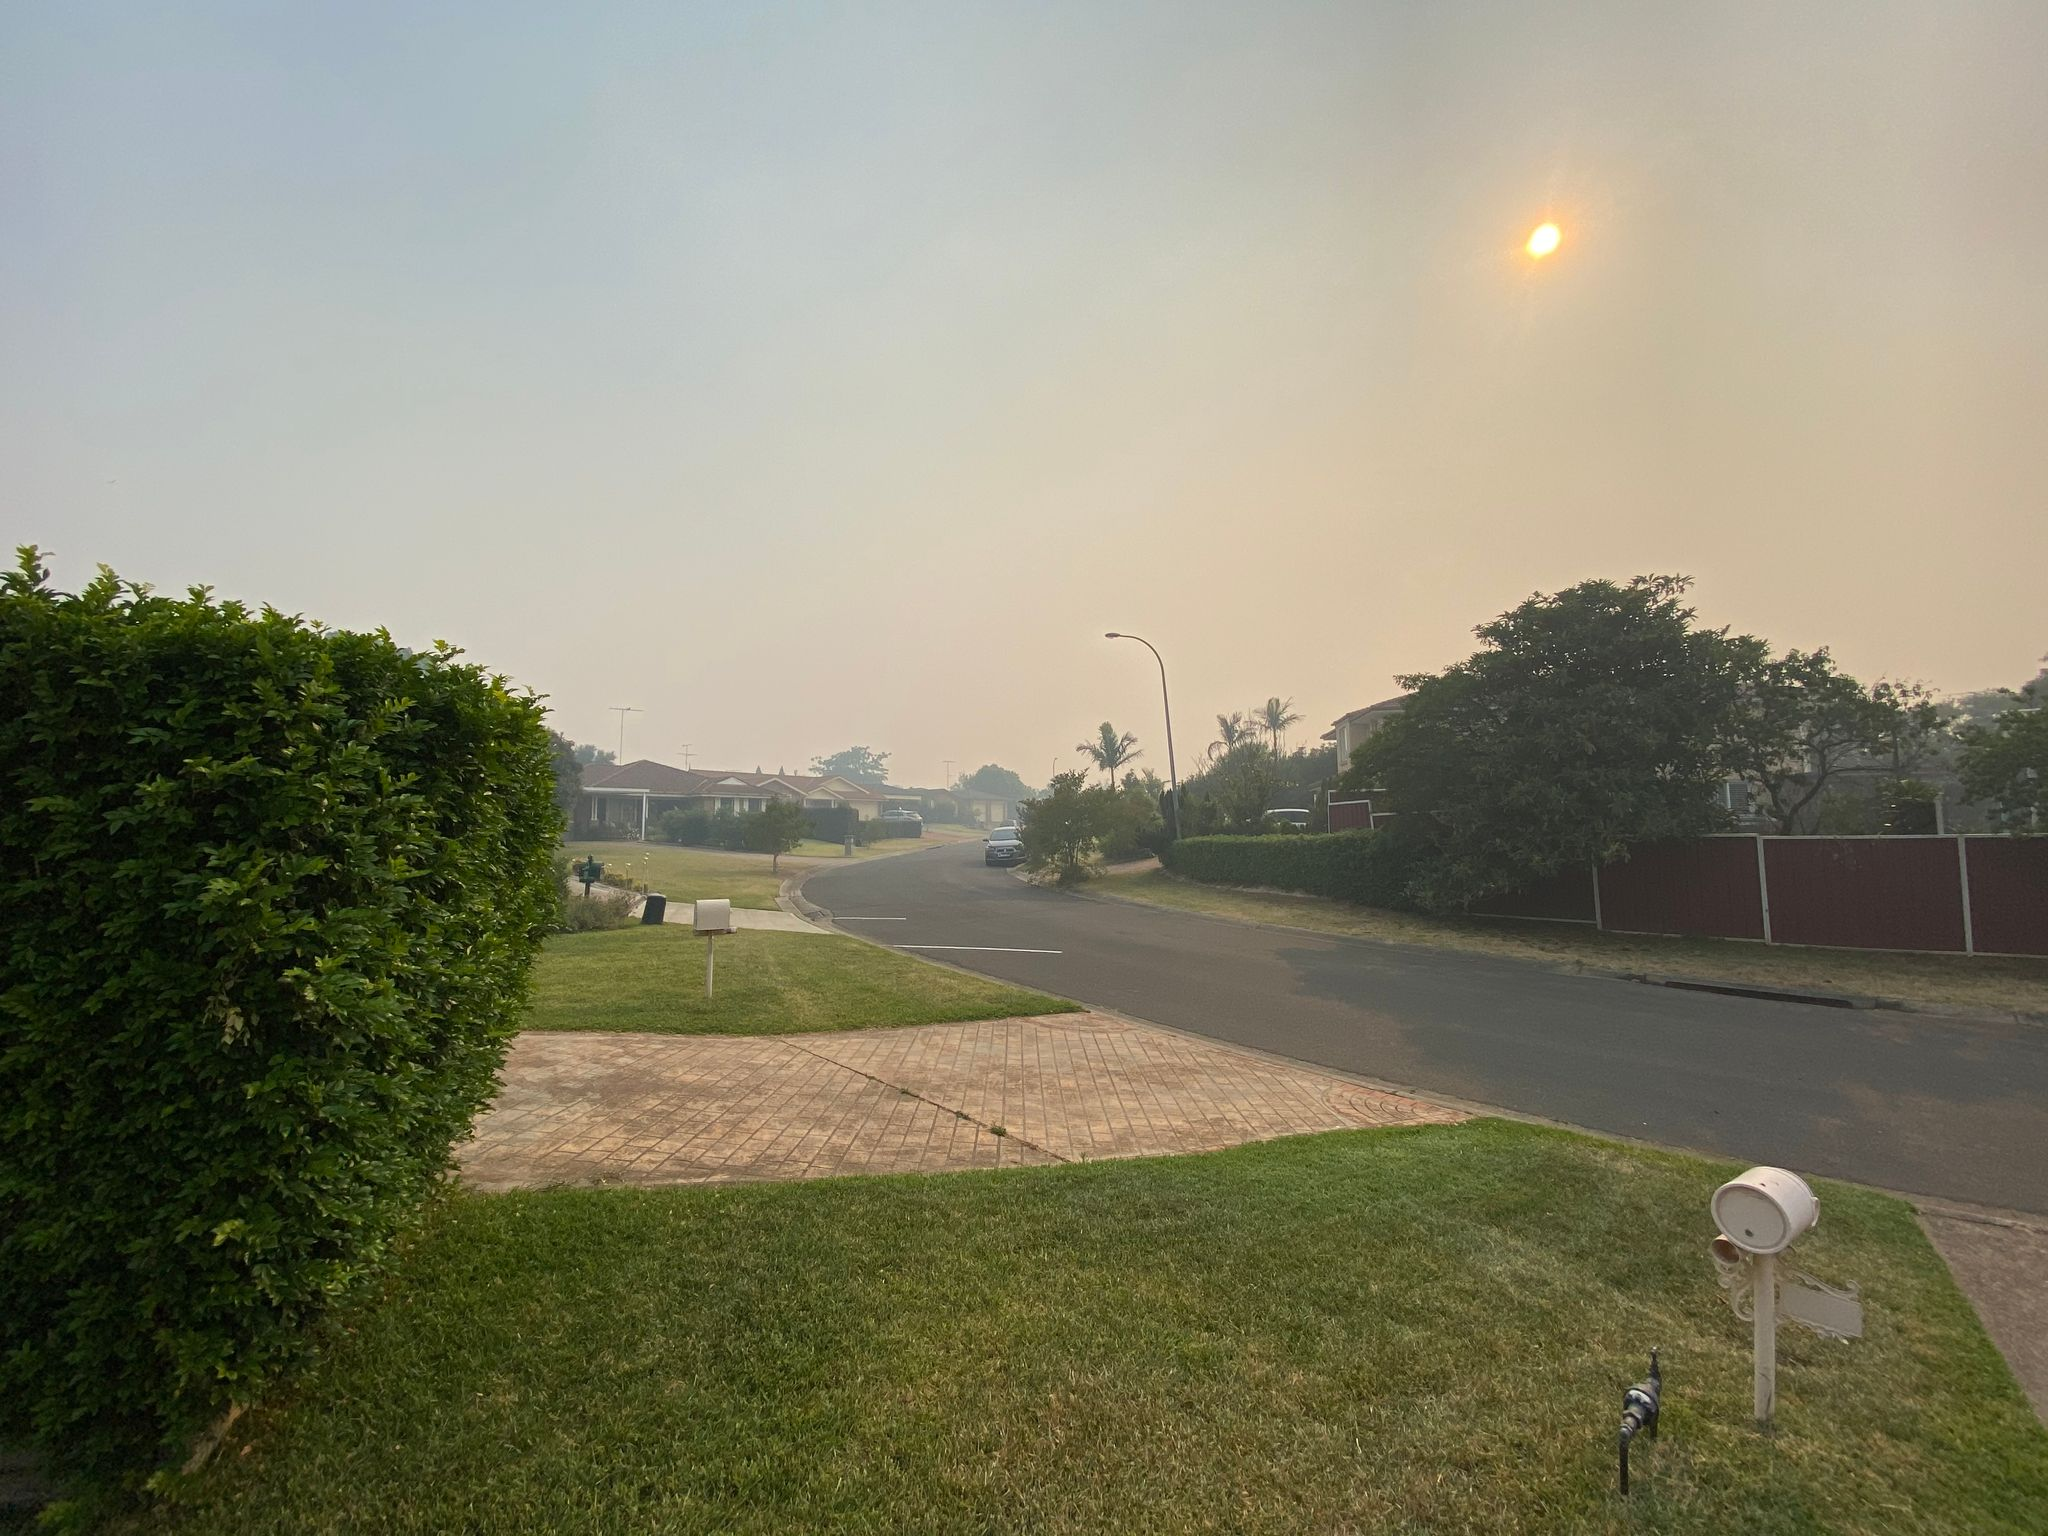 A photo of a suburban street, everything is brown-tinged due to bushfire smoke in the air.